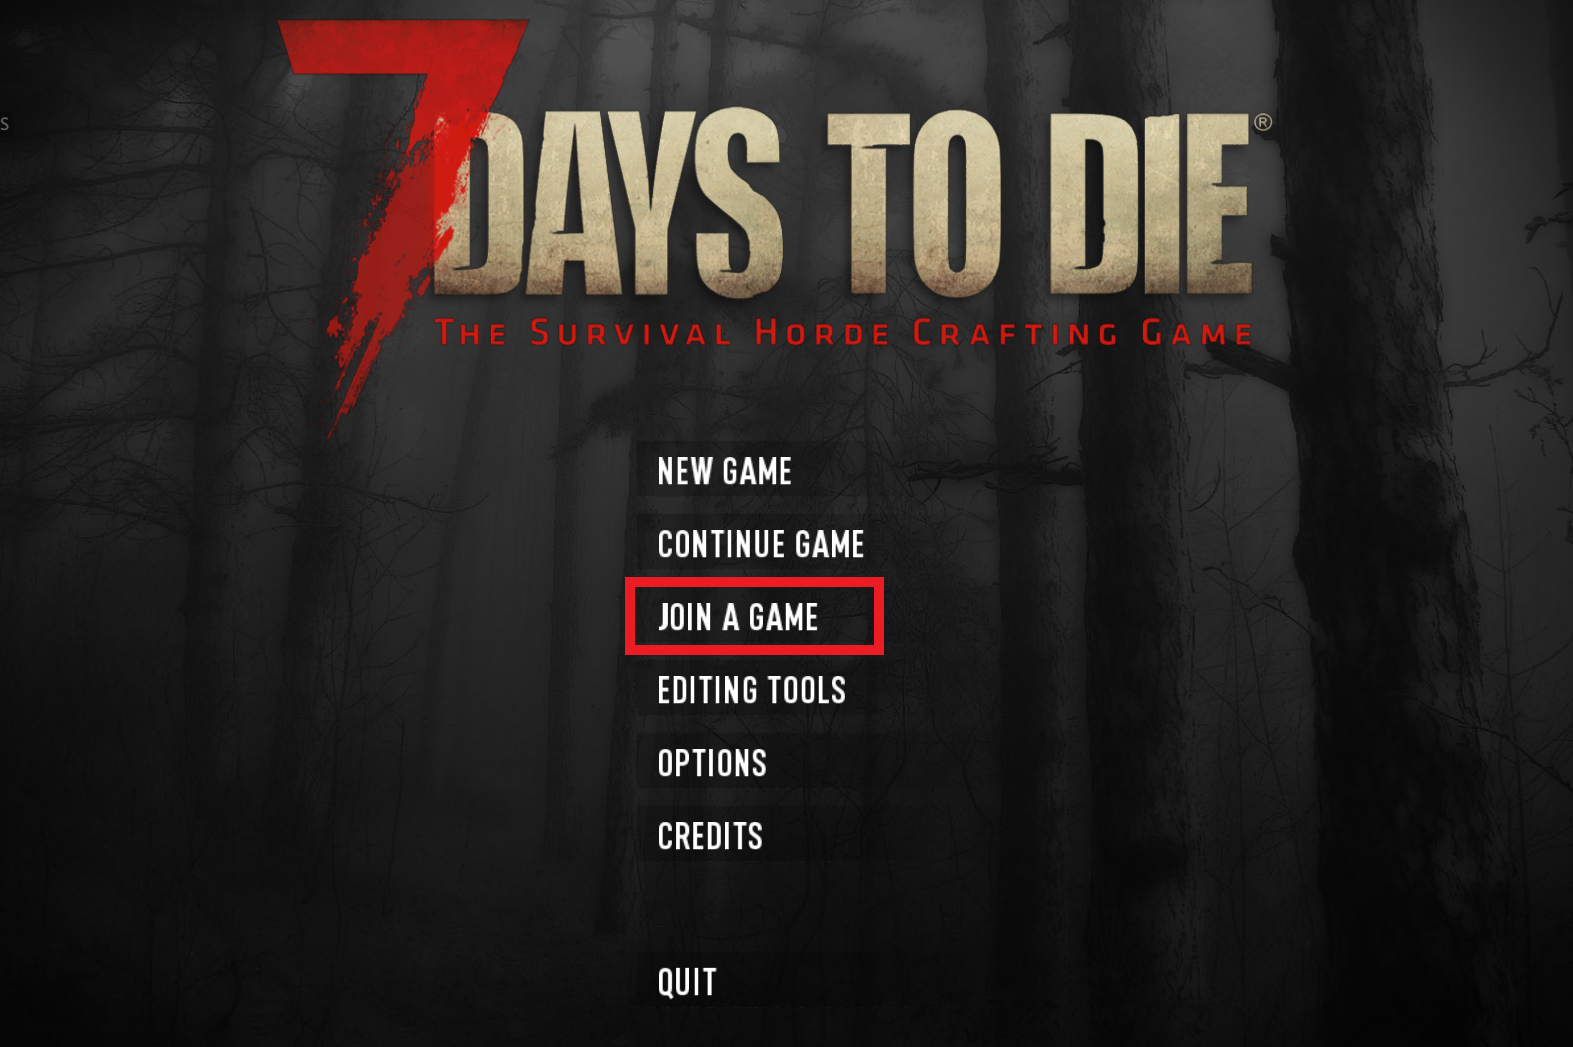 """A view of the main title screen for the game 7 Days to Die, with the """"Join a Game"""" option highlighted."""